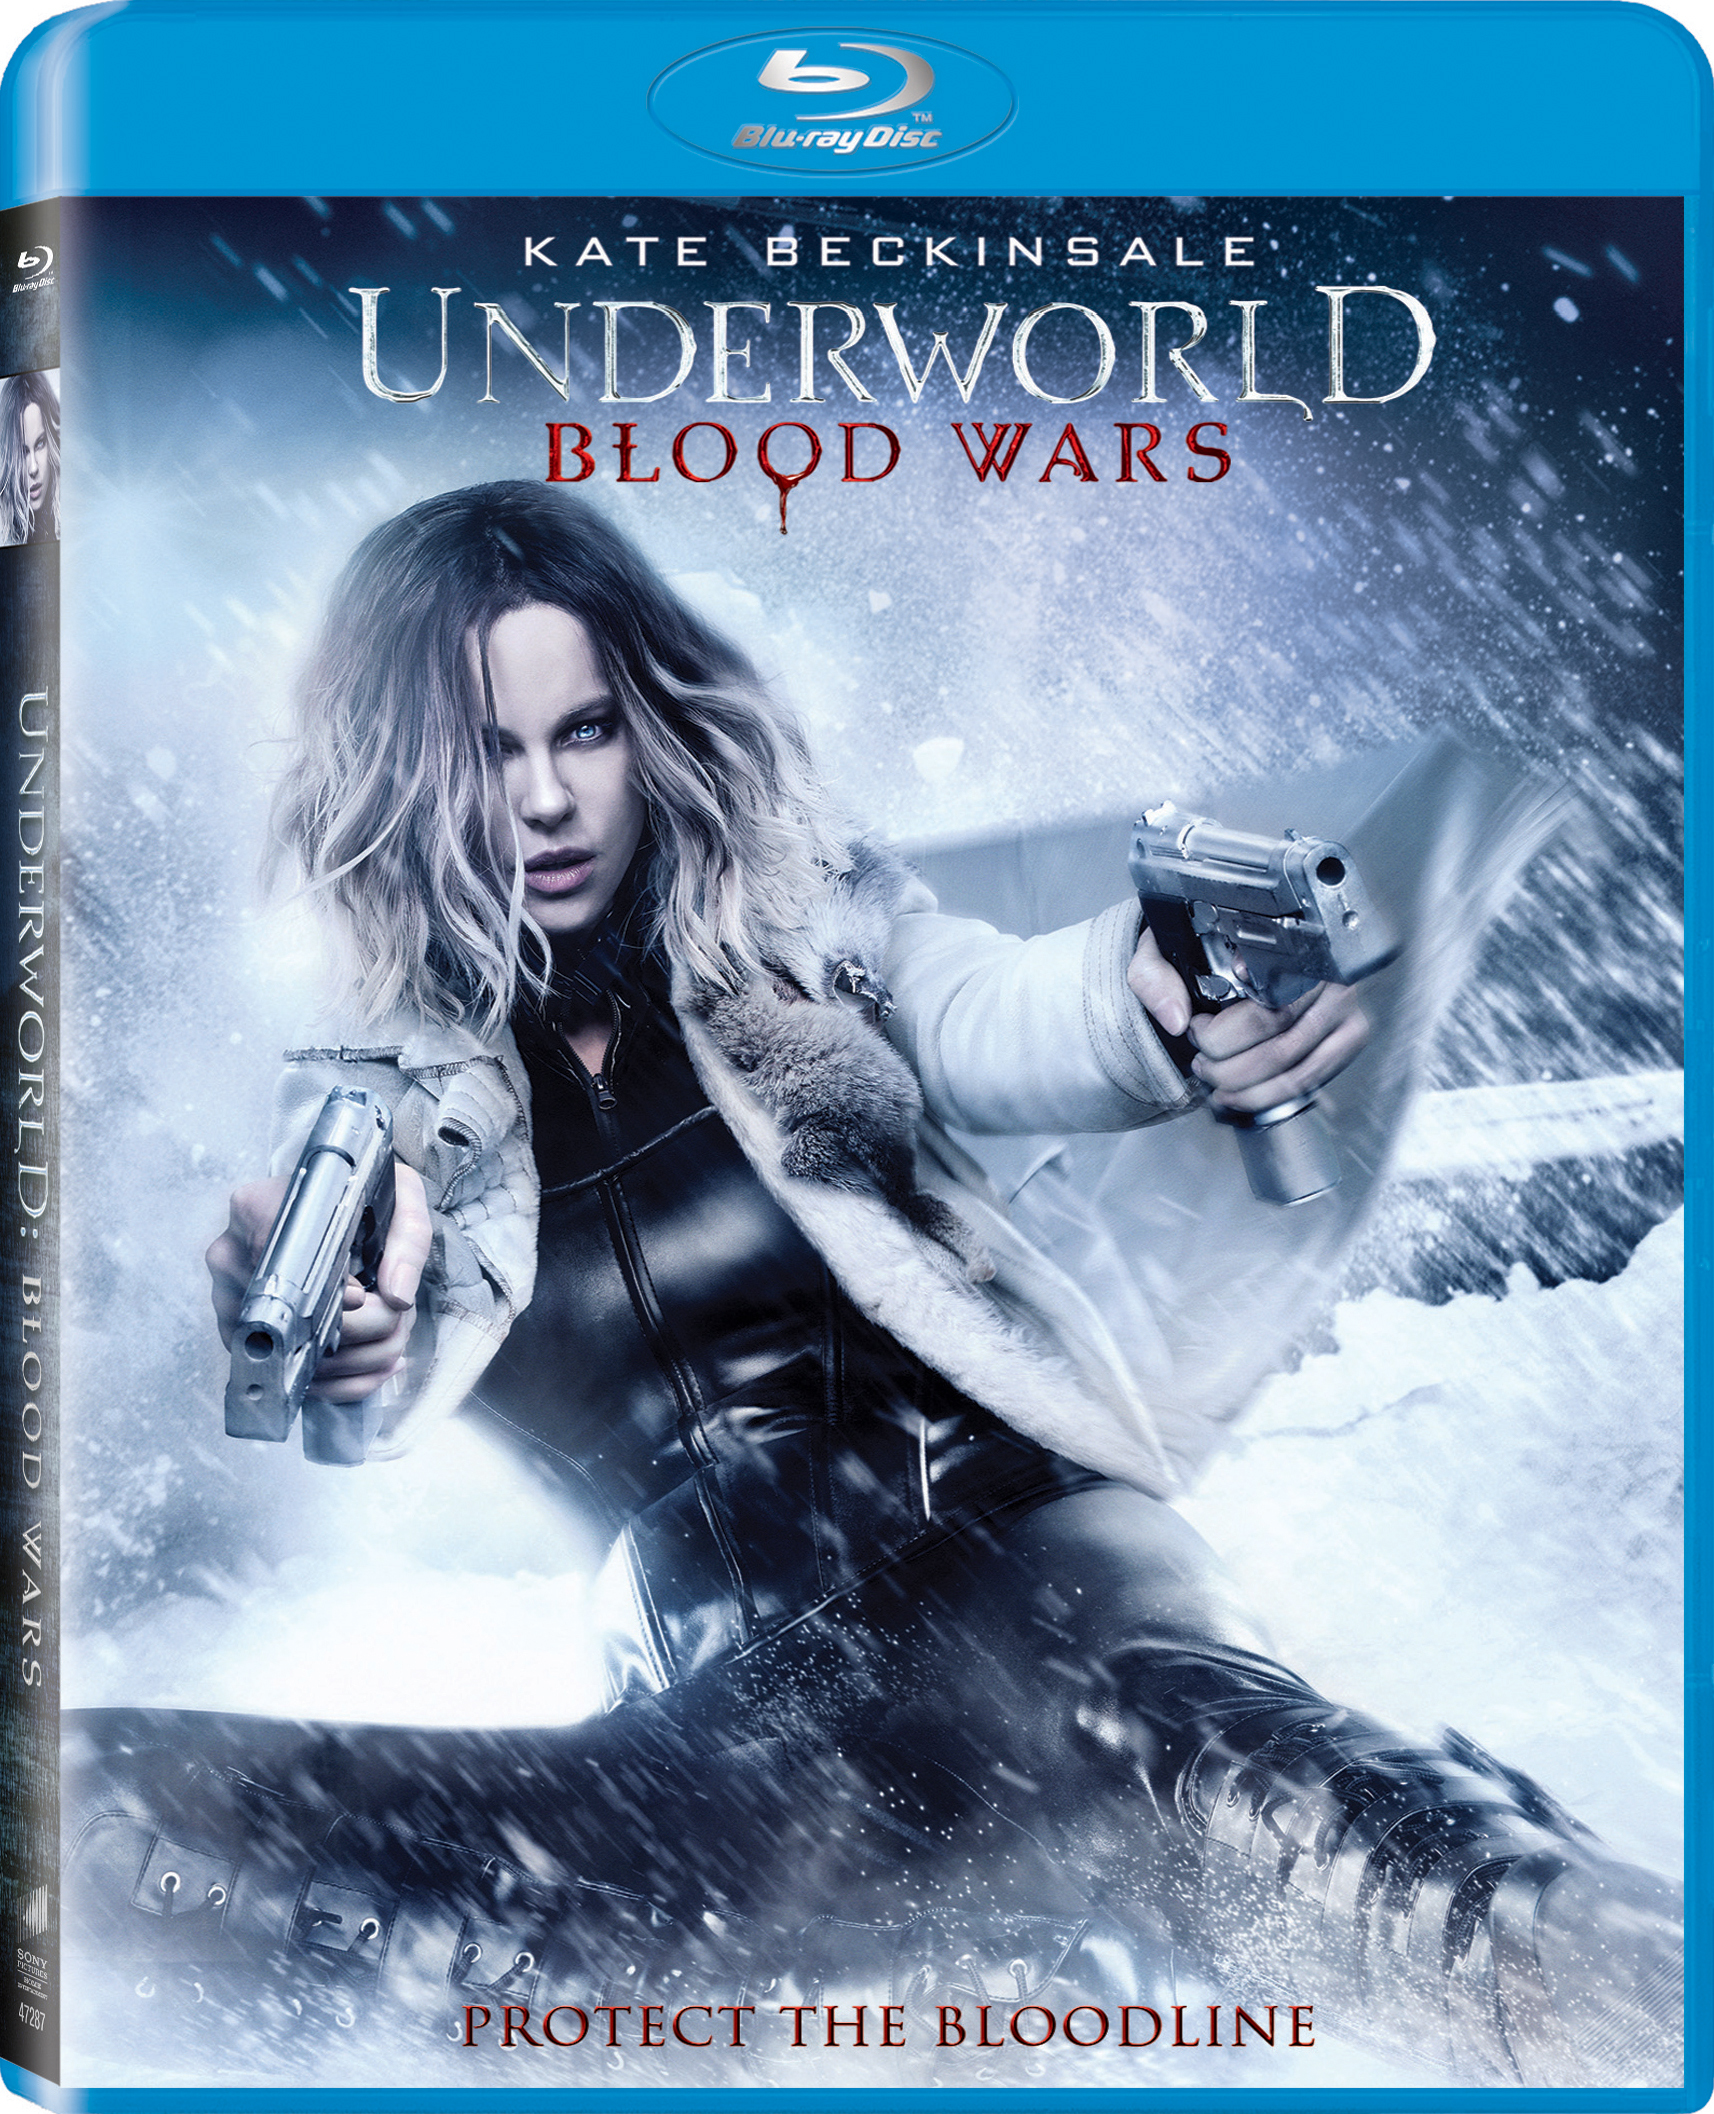 Underworld: Blood Wars (2016) poster image